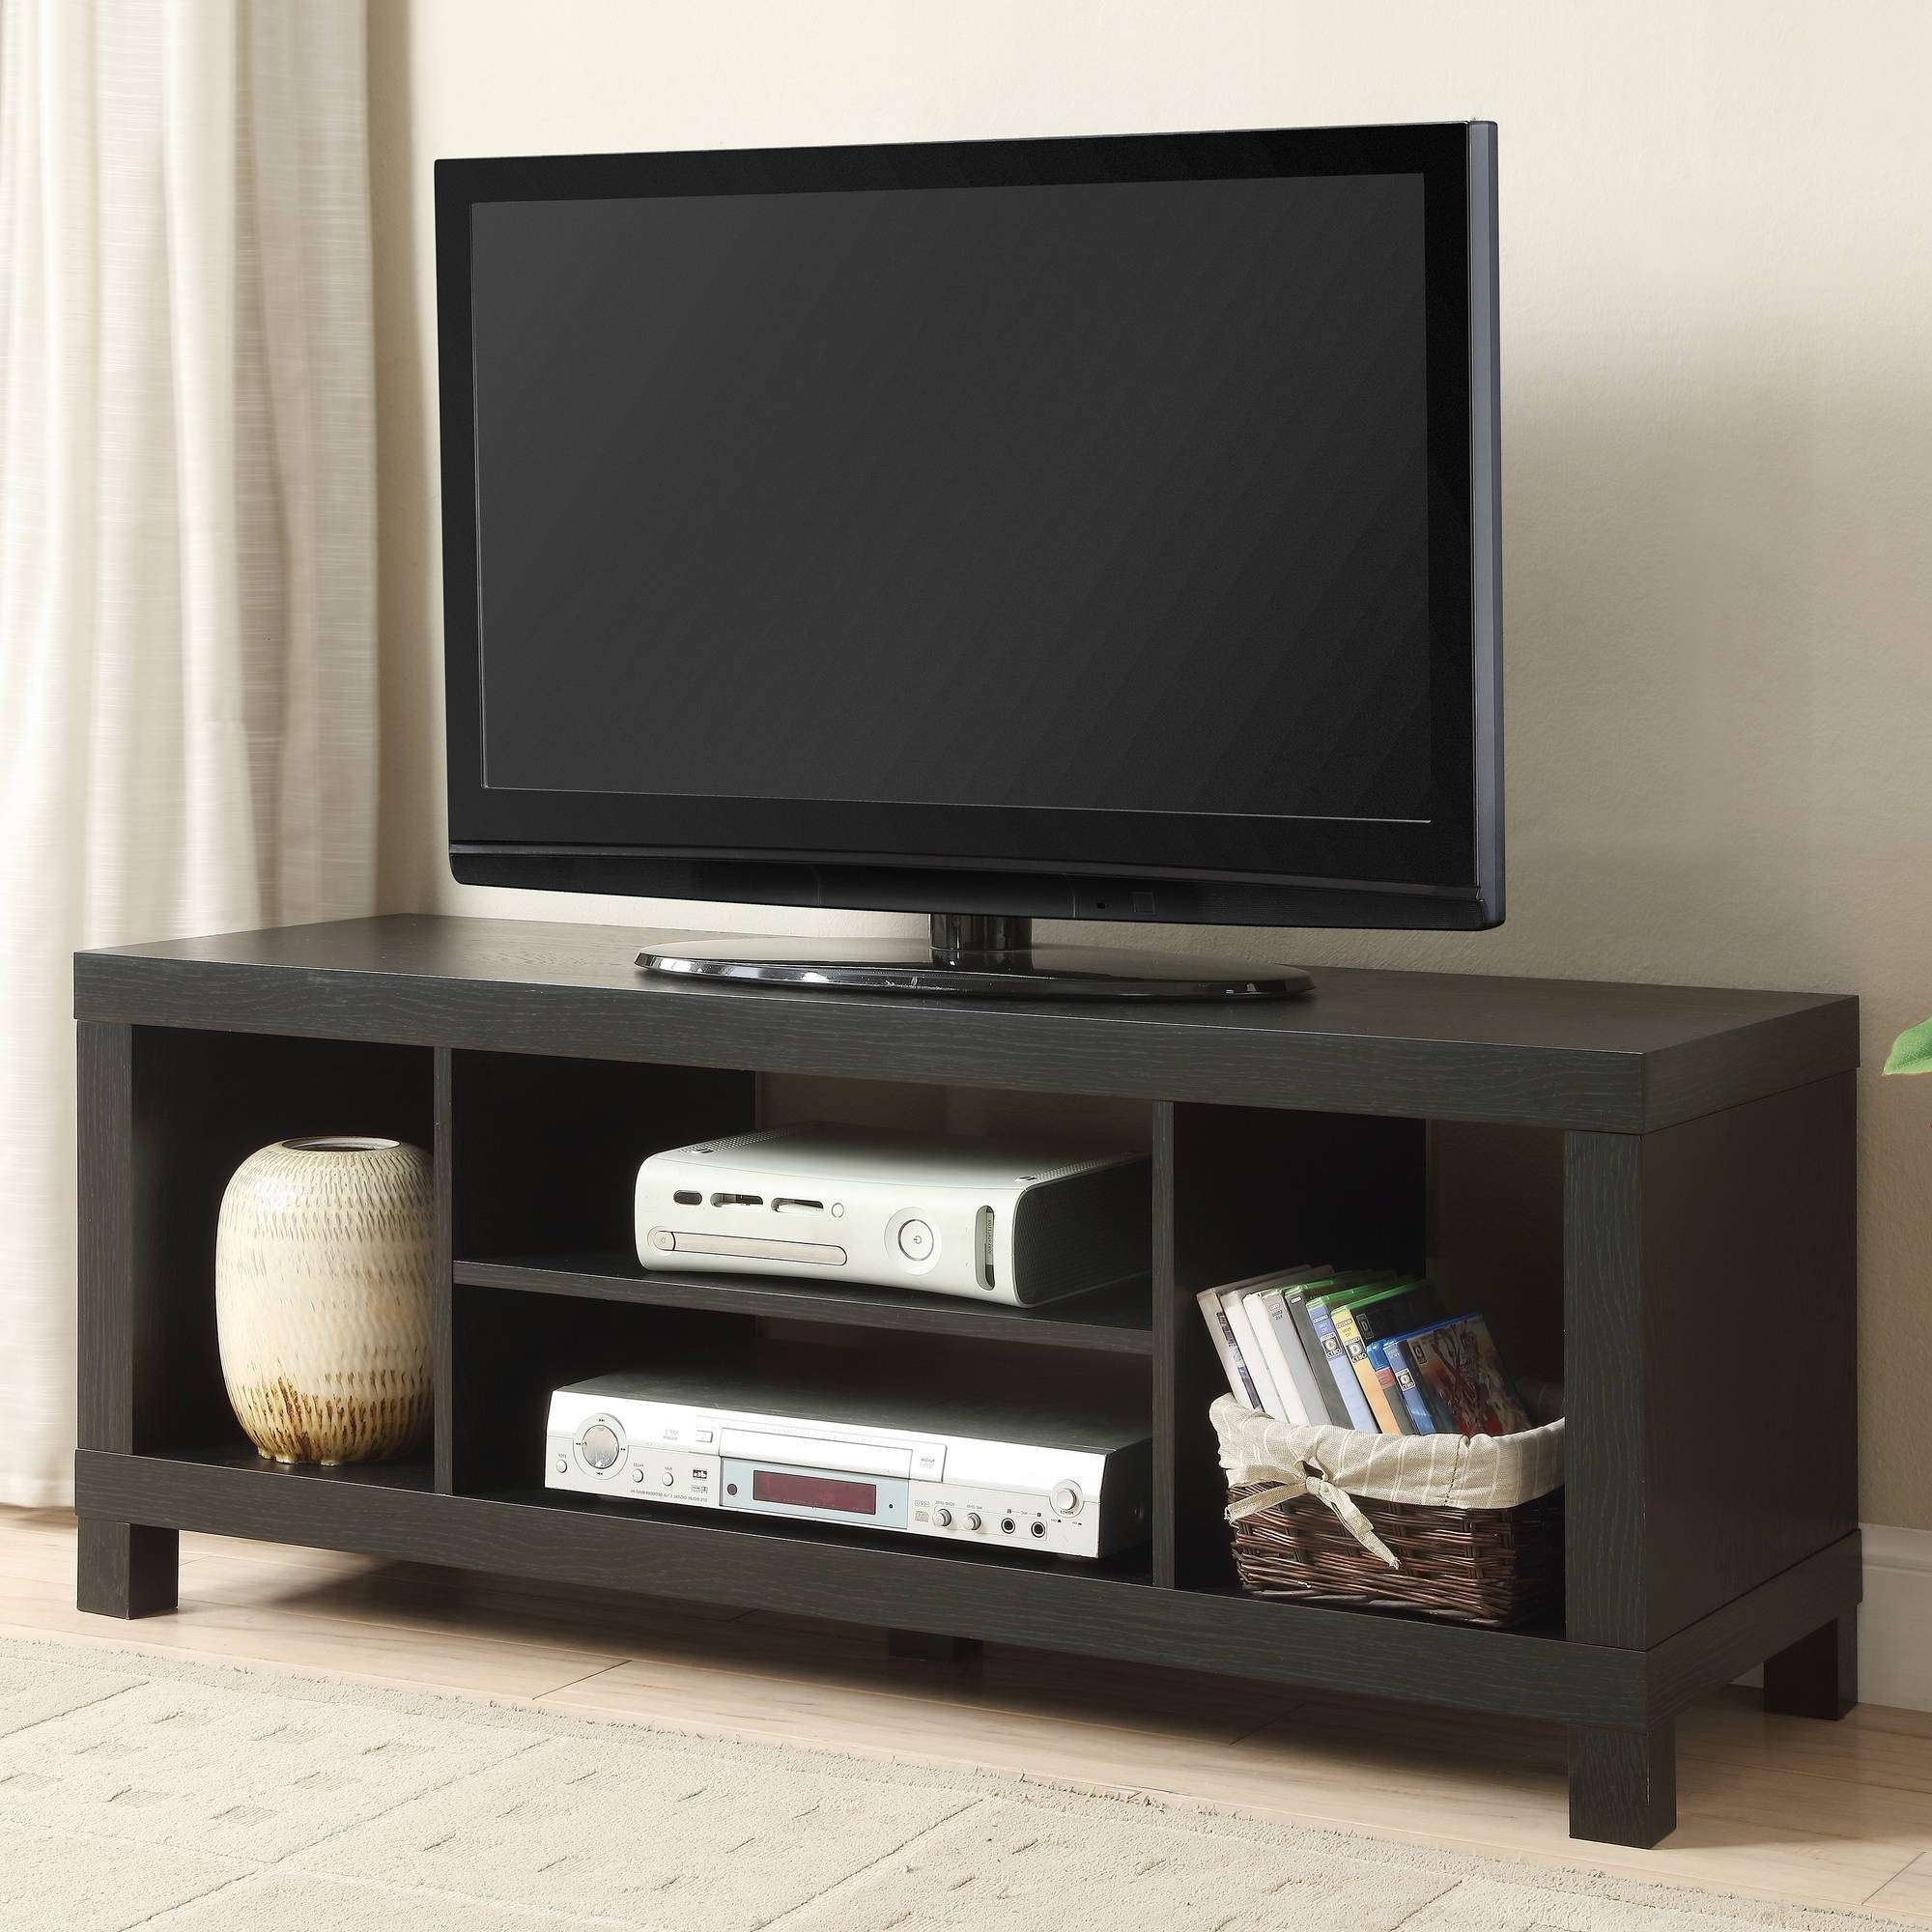 Tv Stands – Walmart Intended For Stand And Deliver Tv Stands (View 14 of 20)